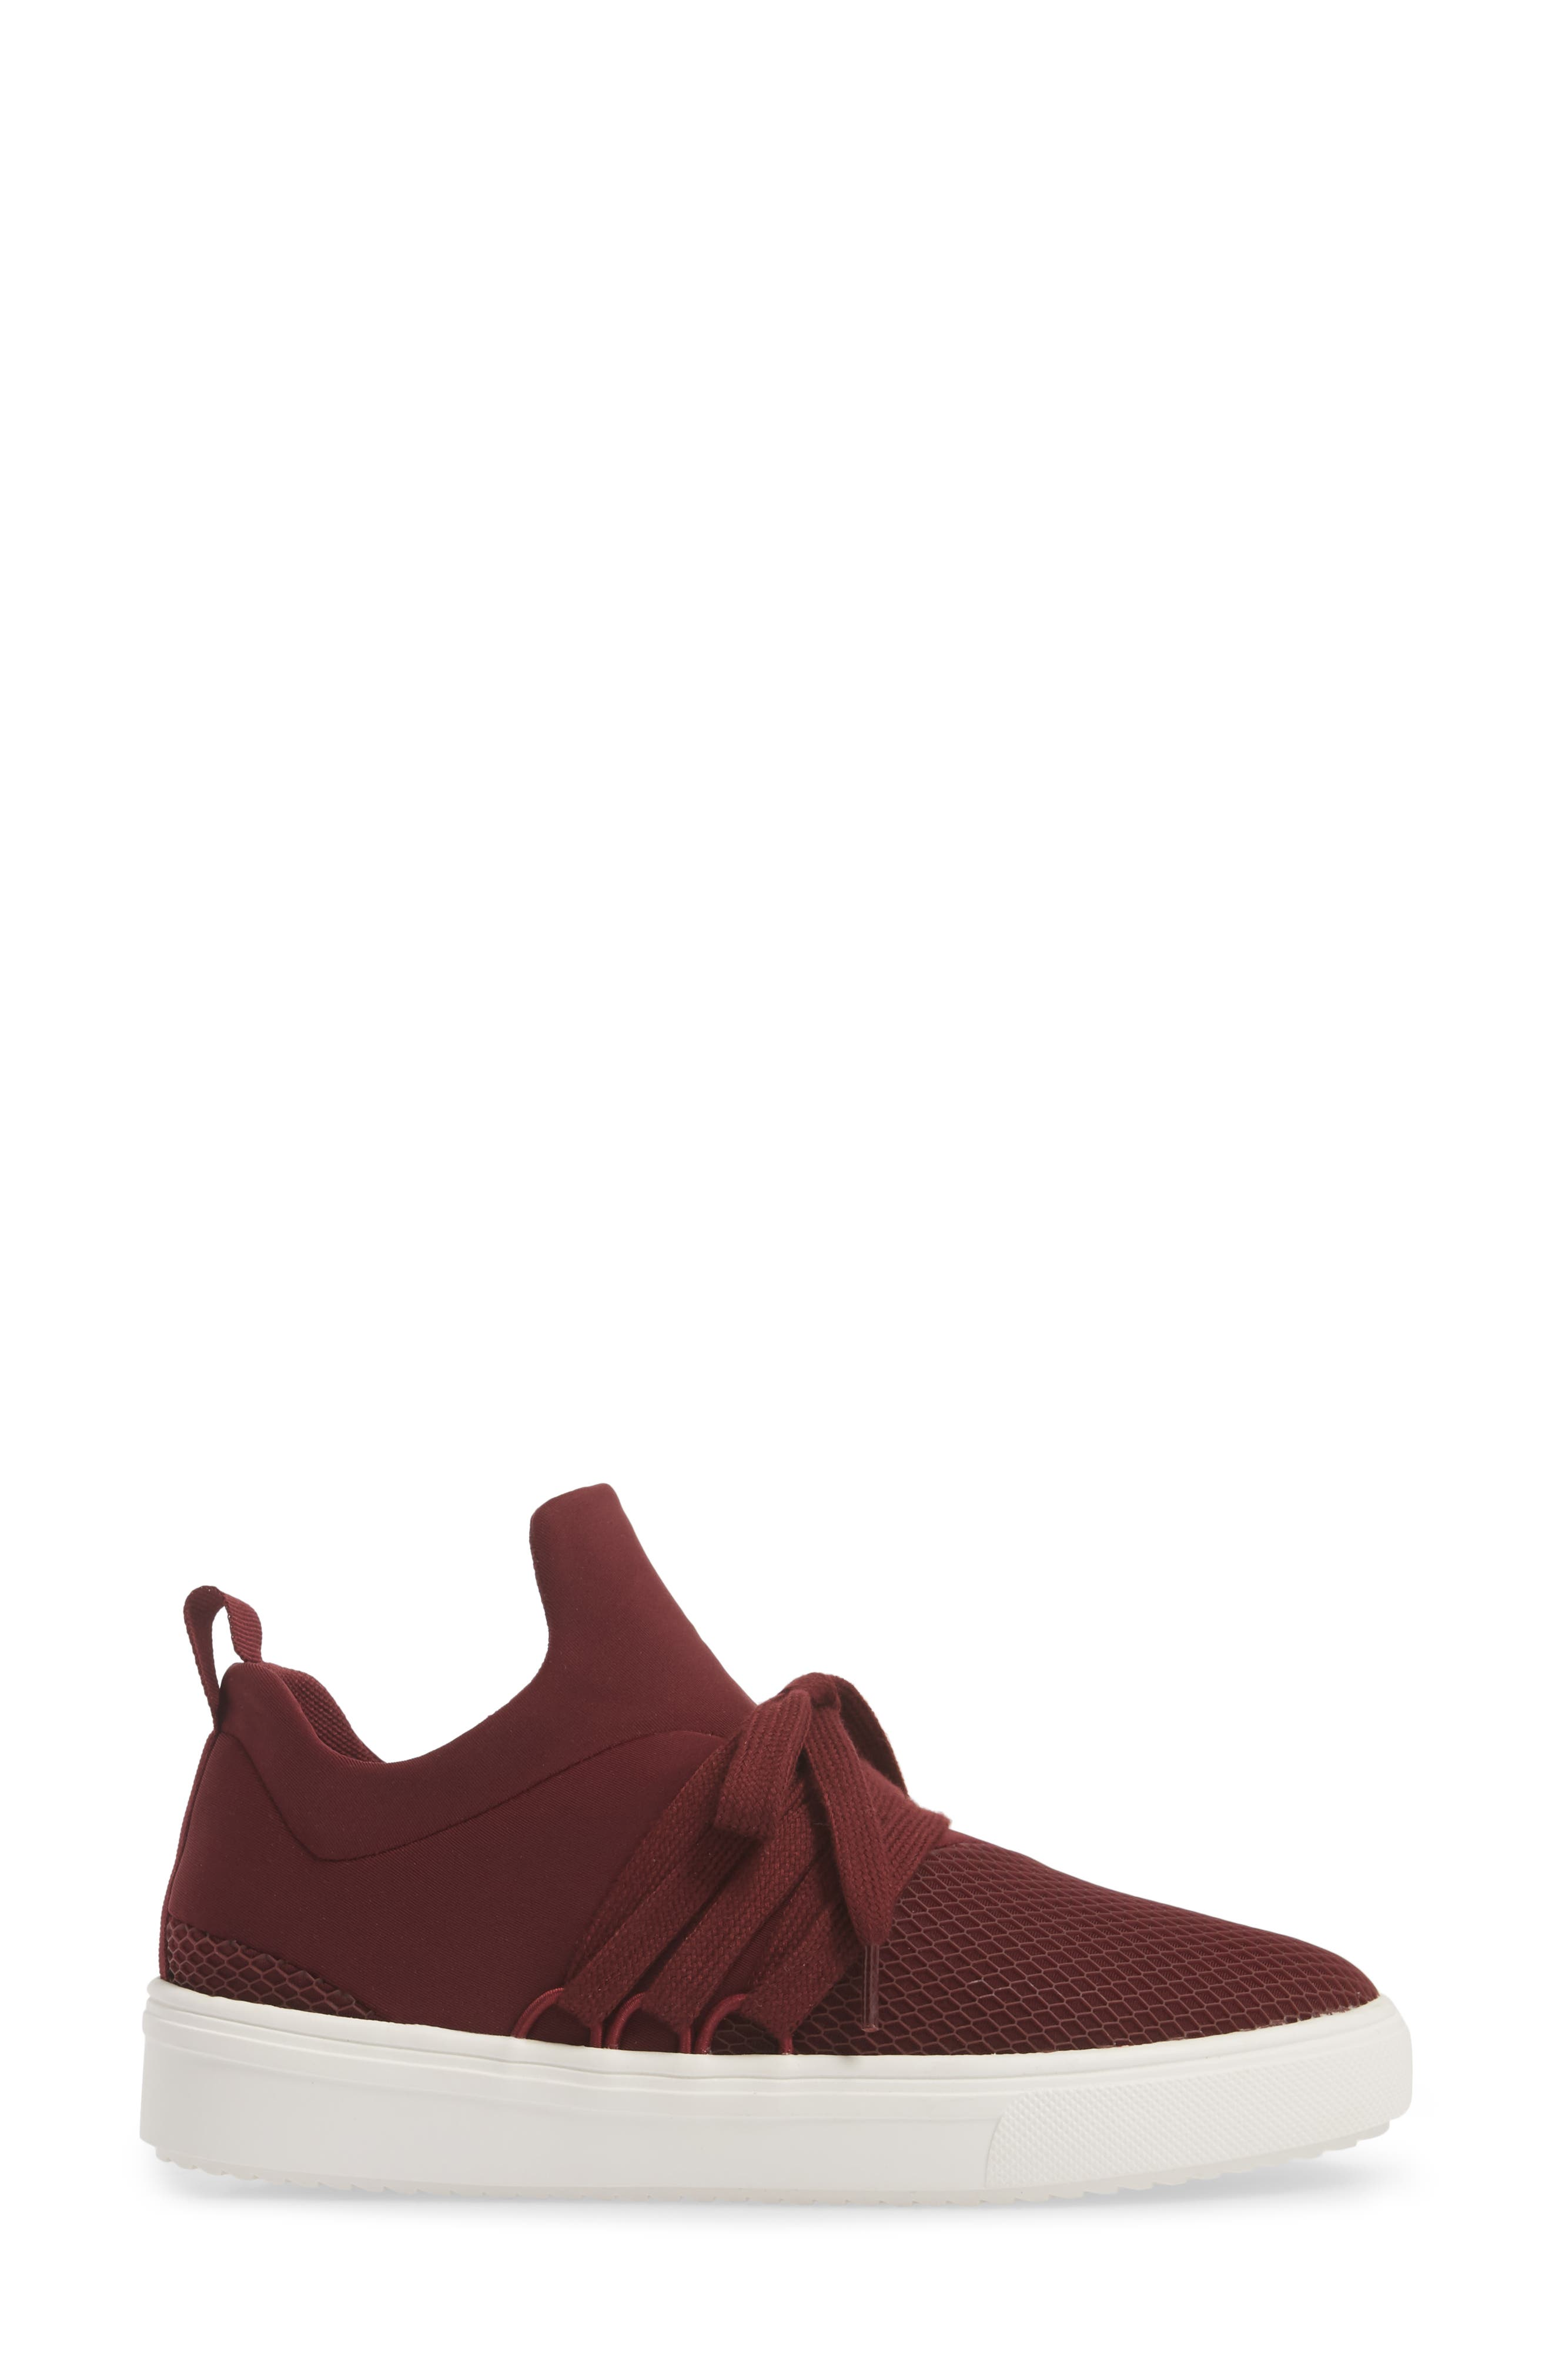 Lancer Sneaker,                             Alternate thumbnail 30, color,